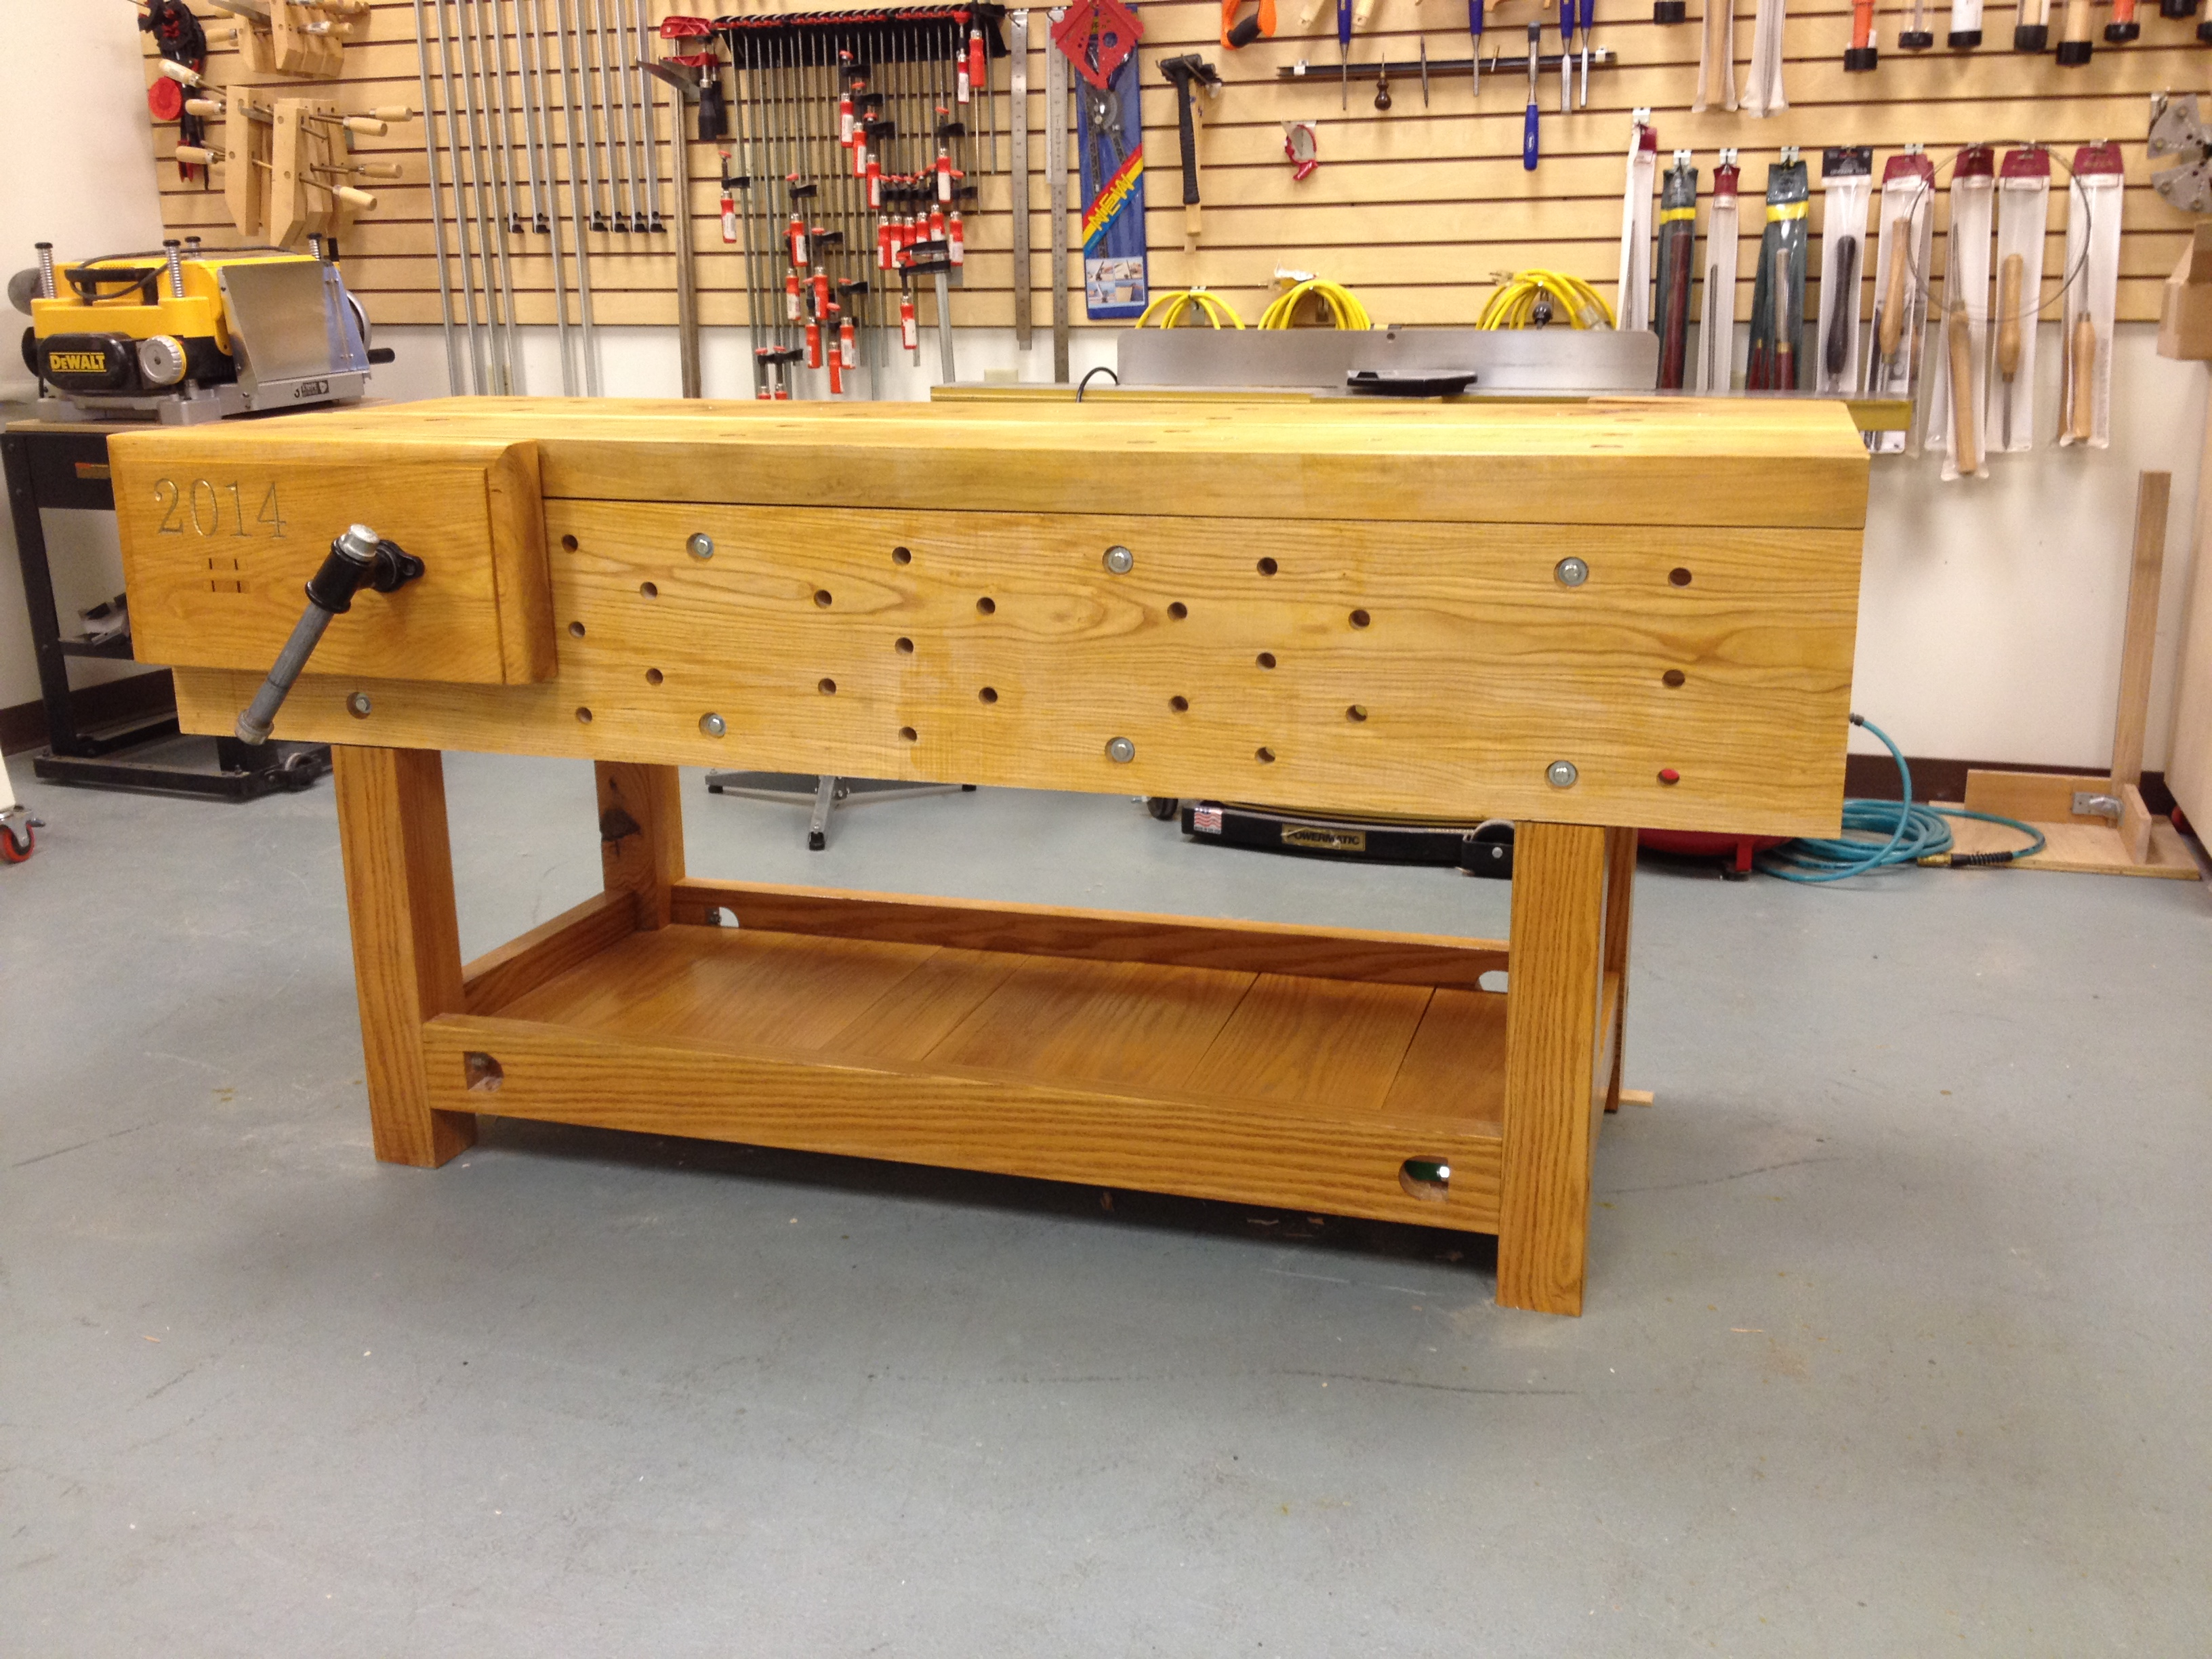 Nicholson Bench Project – Shellac on a workbench? | A ...